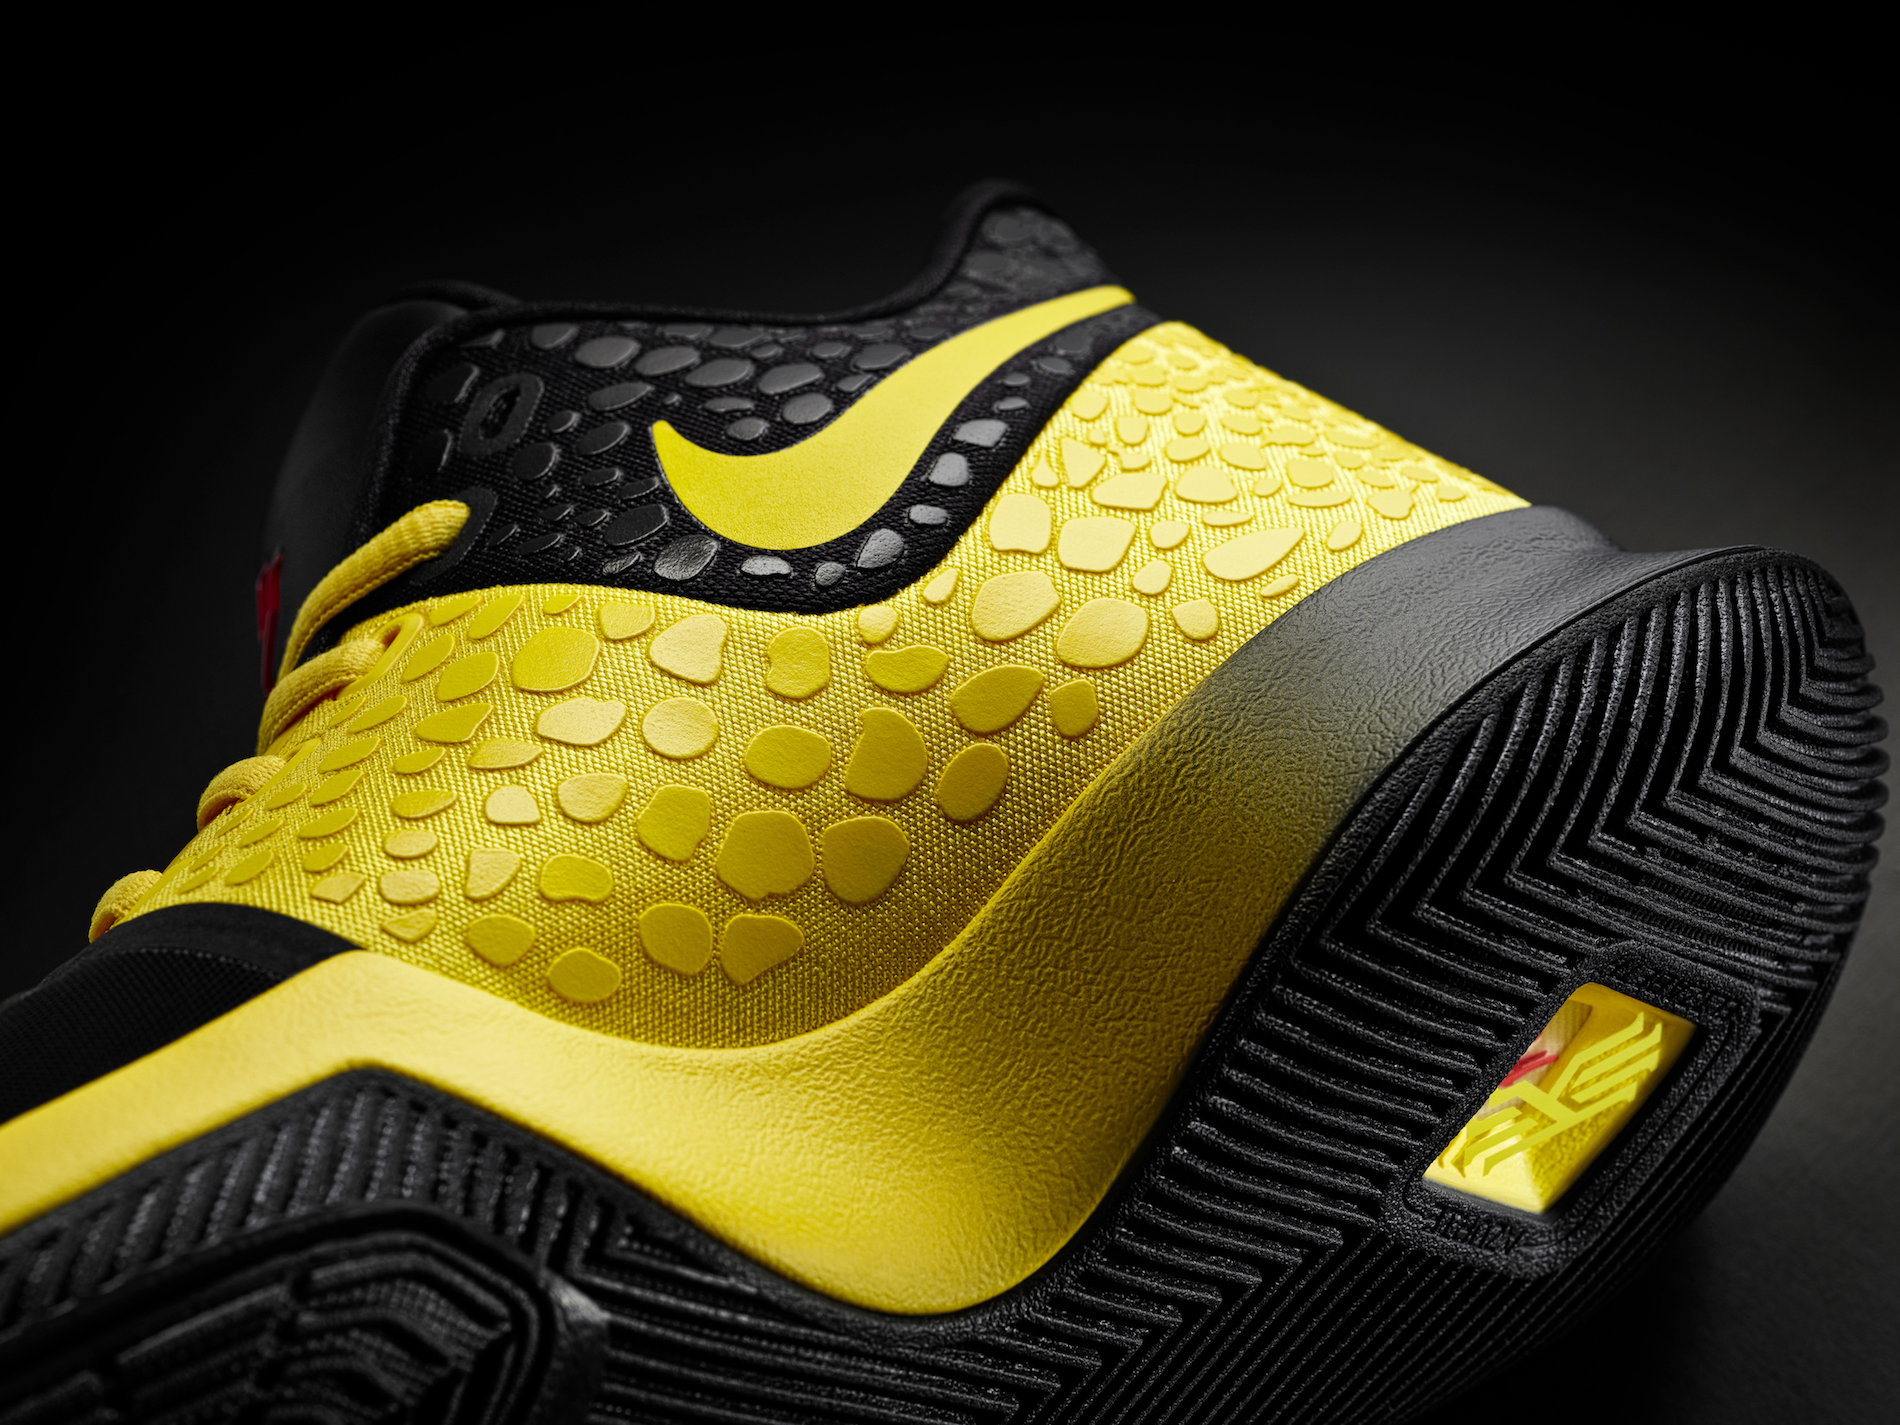 new products cff90 2eead Release Details and Price for the Nike Kyrie 3 'Mamba ...